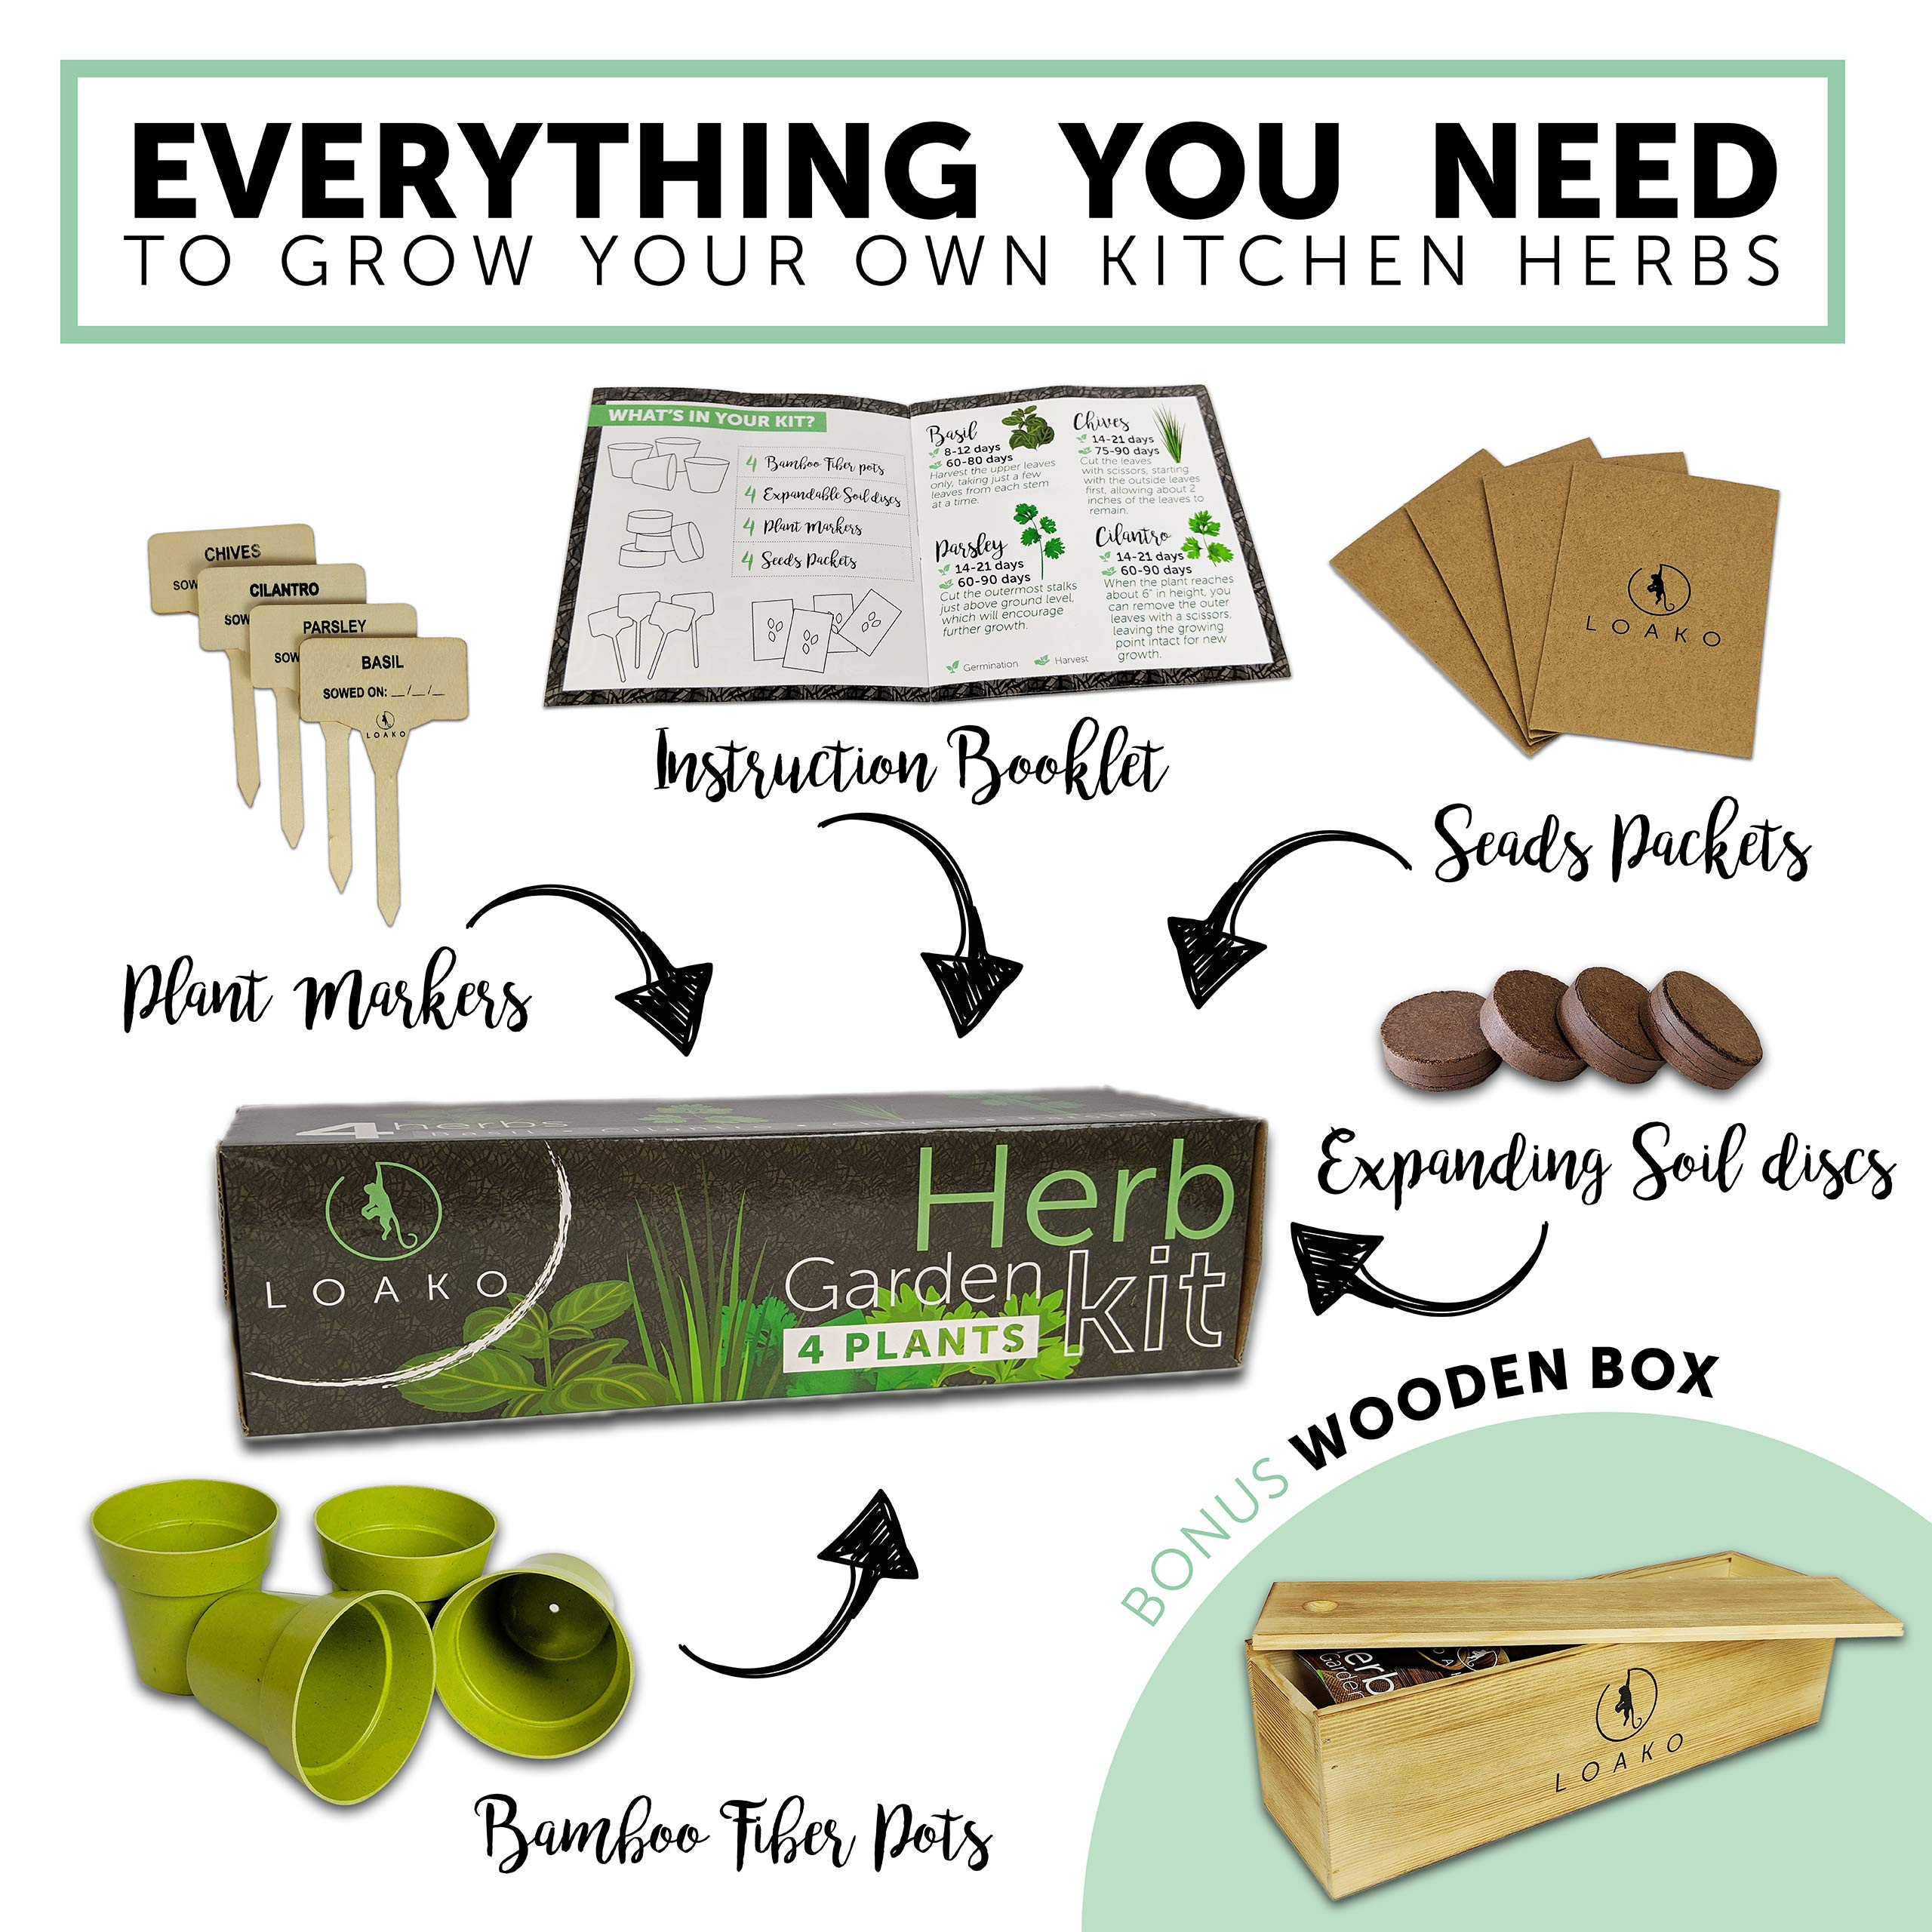 Herb Garden Kit. Includes Pots, Seeds, Soil Pellets, Markers, Instructions Booklet. Basil, Parsley, Cilantro, Chives. Great Gift Idea. Very Easy to Grow by Loako (Image #2)